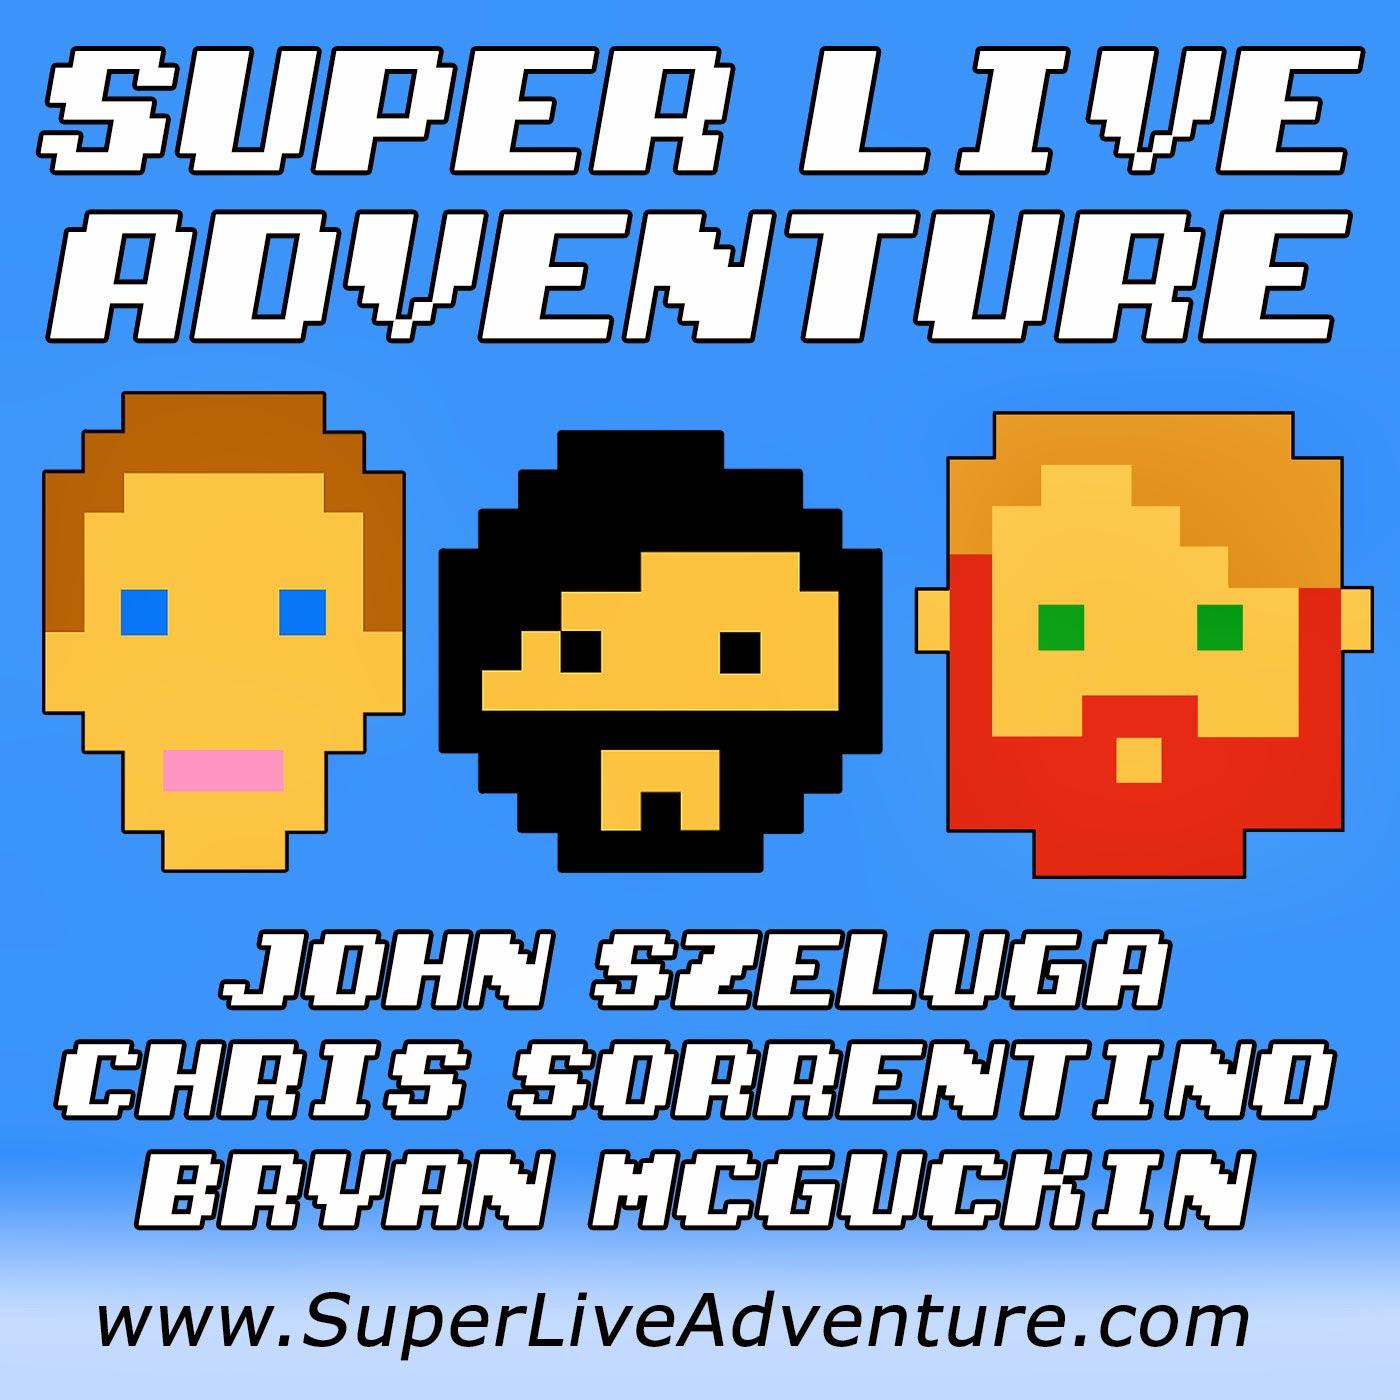 Super Live Adventure Podcast!